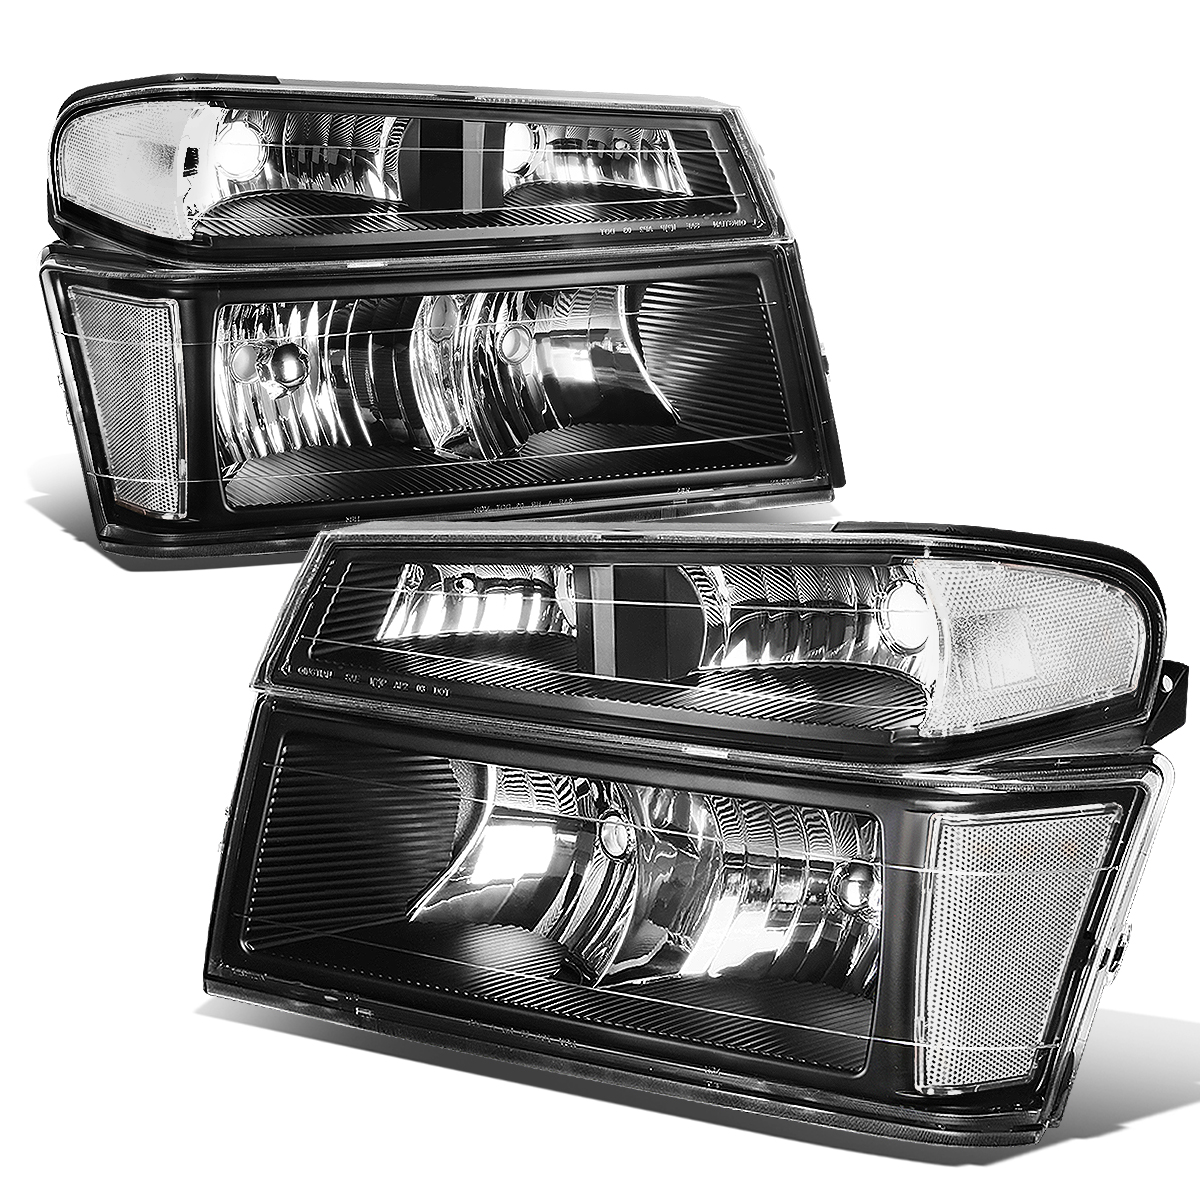 Driver and Passenger Side Chrome Headlight Assembly for 04-12 Chevy Colorado 04-12 GMC Canyon Headlamps Replacement with Bumper Lights